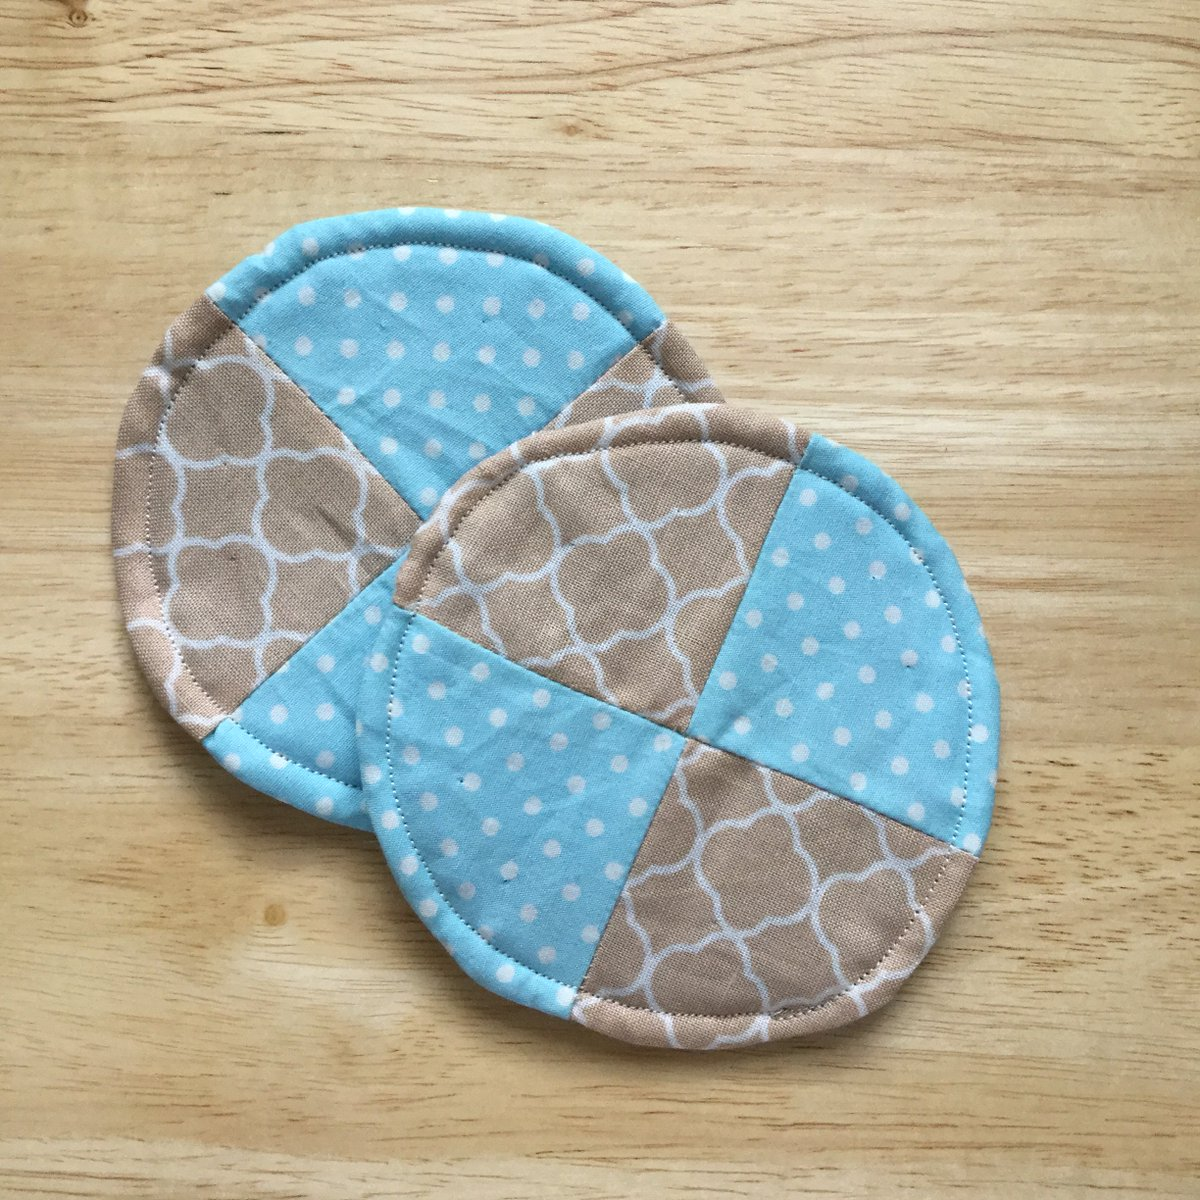 New Blog Post! How to make your own fabric cup coasters!  http:// wp.me/p6sR9e-en  &nbsp;   #aBoxofButtons #SewingProjects<br>http://pic.twitter.com/noCeQxRZkD